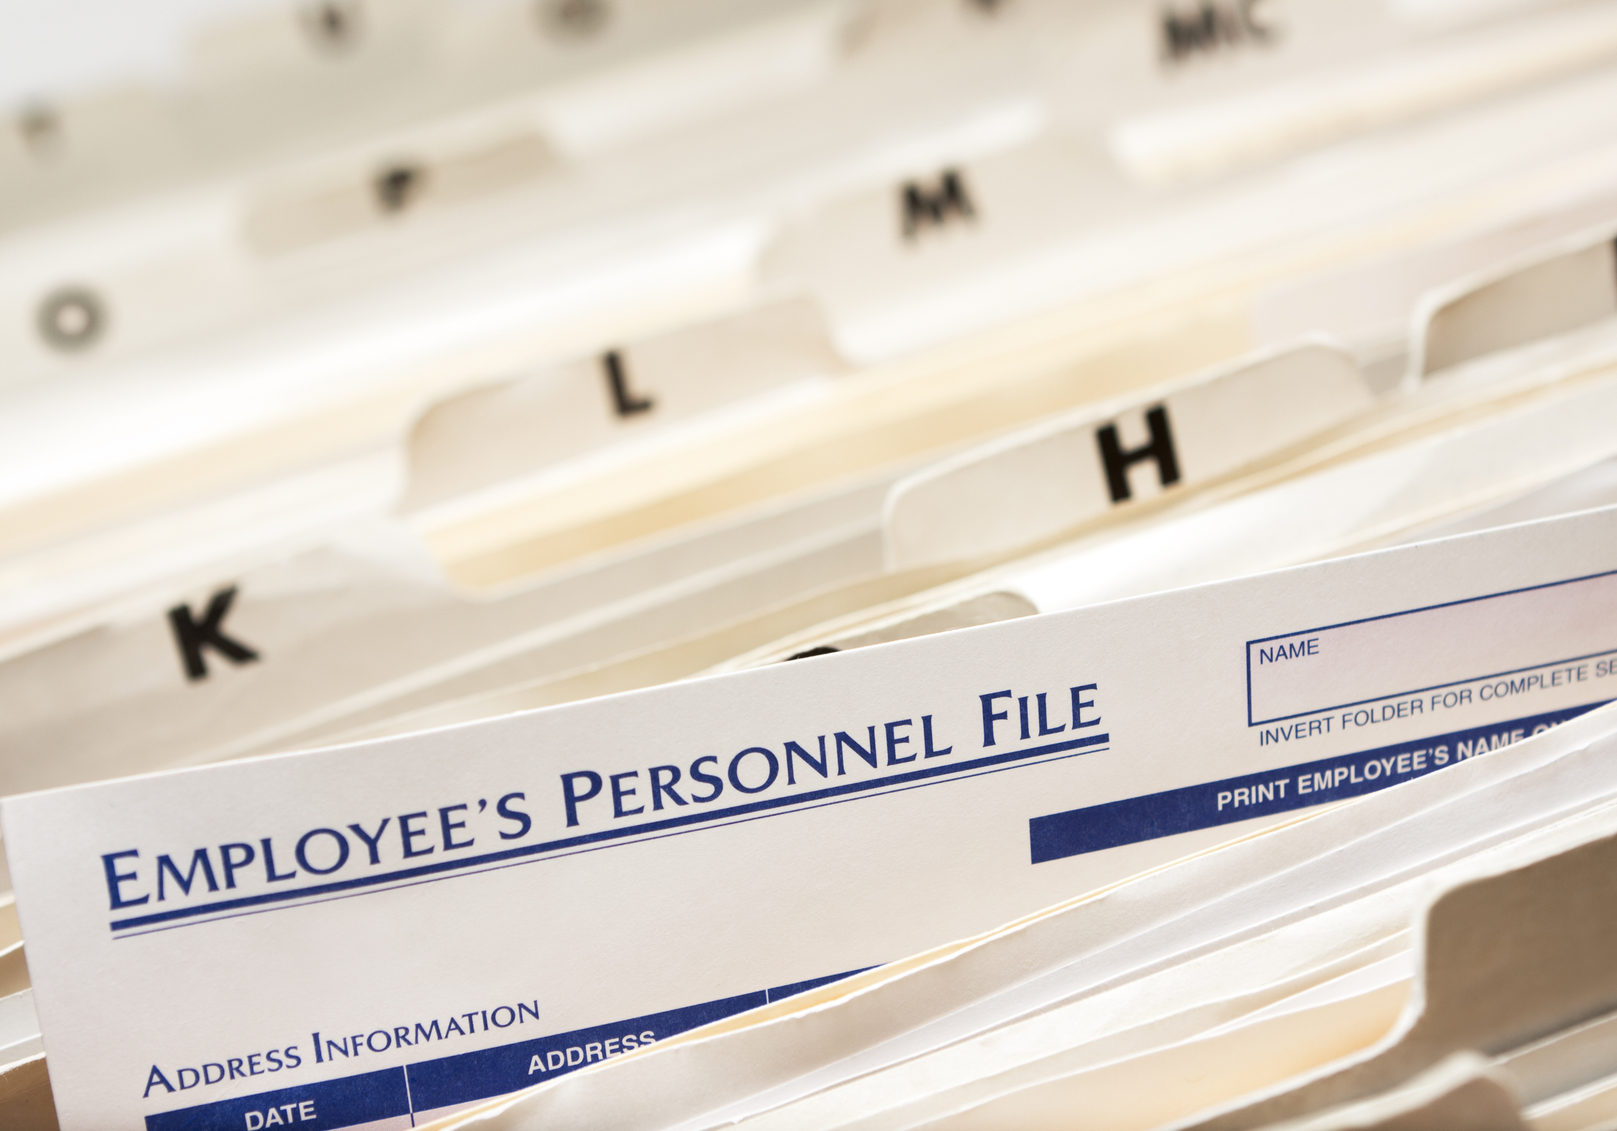 Employee's Personnel File; Narrow depth of field.